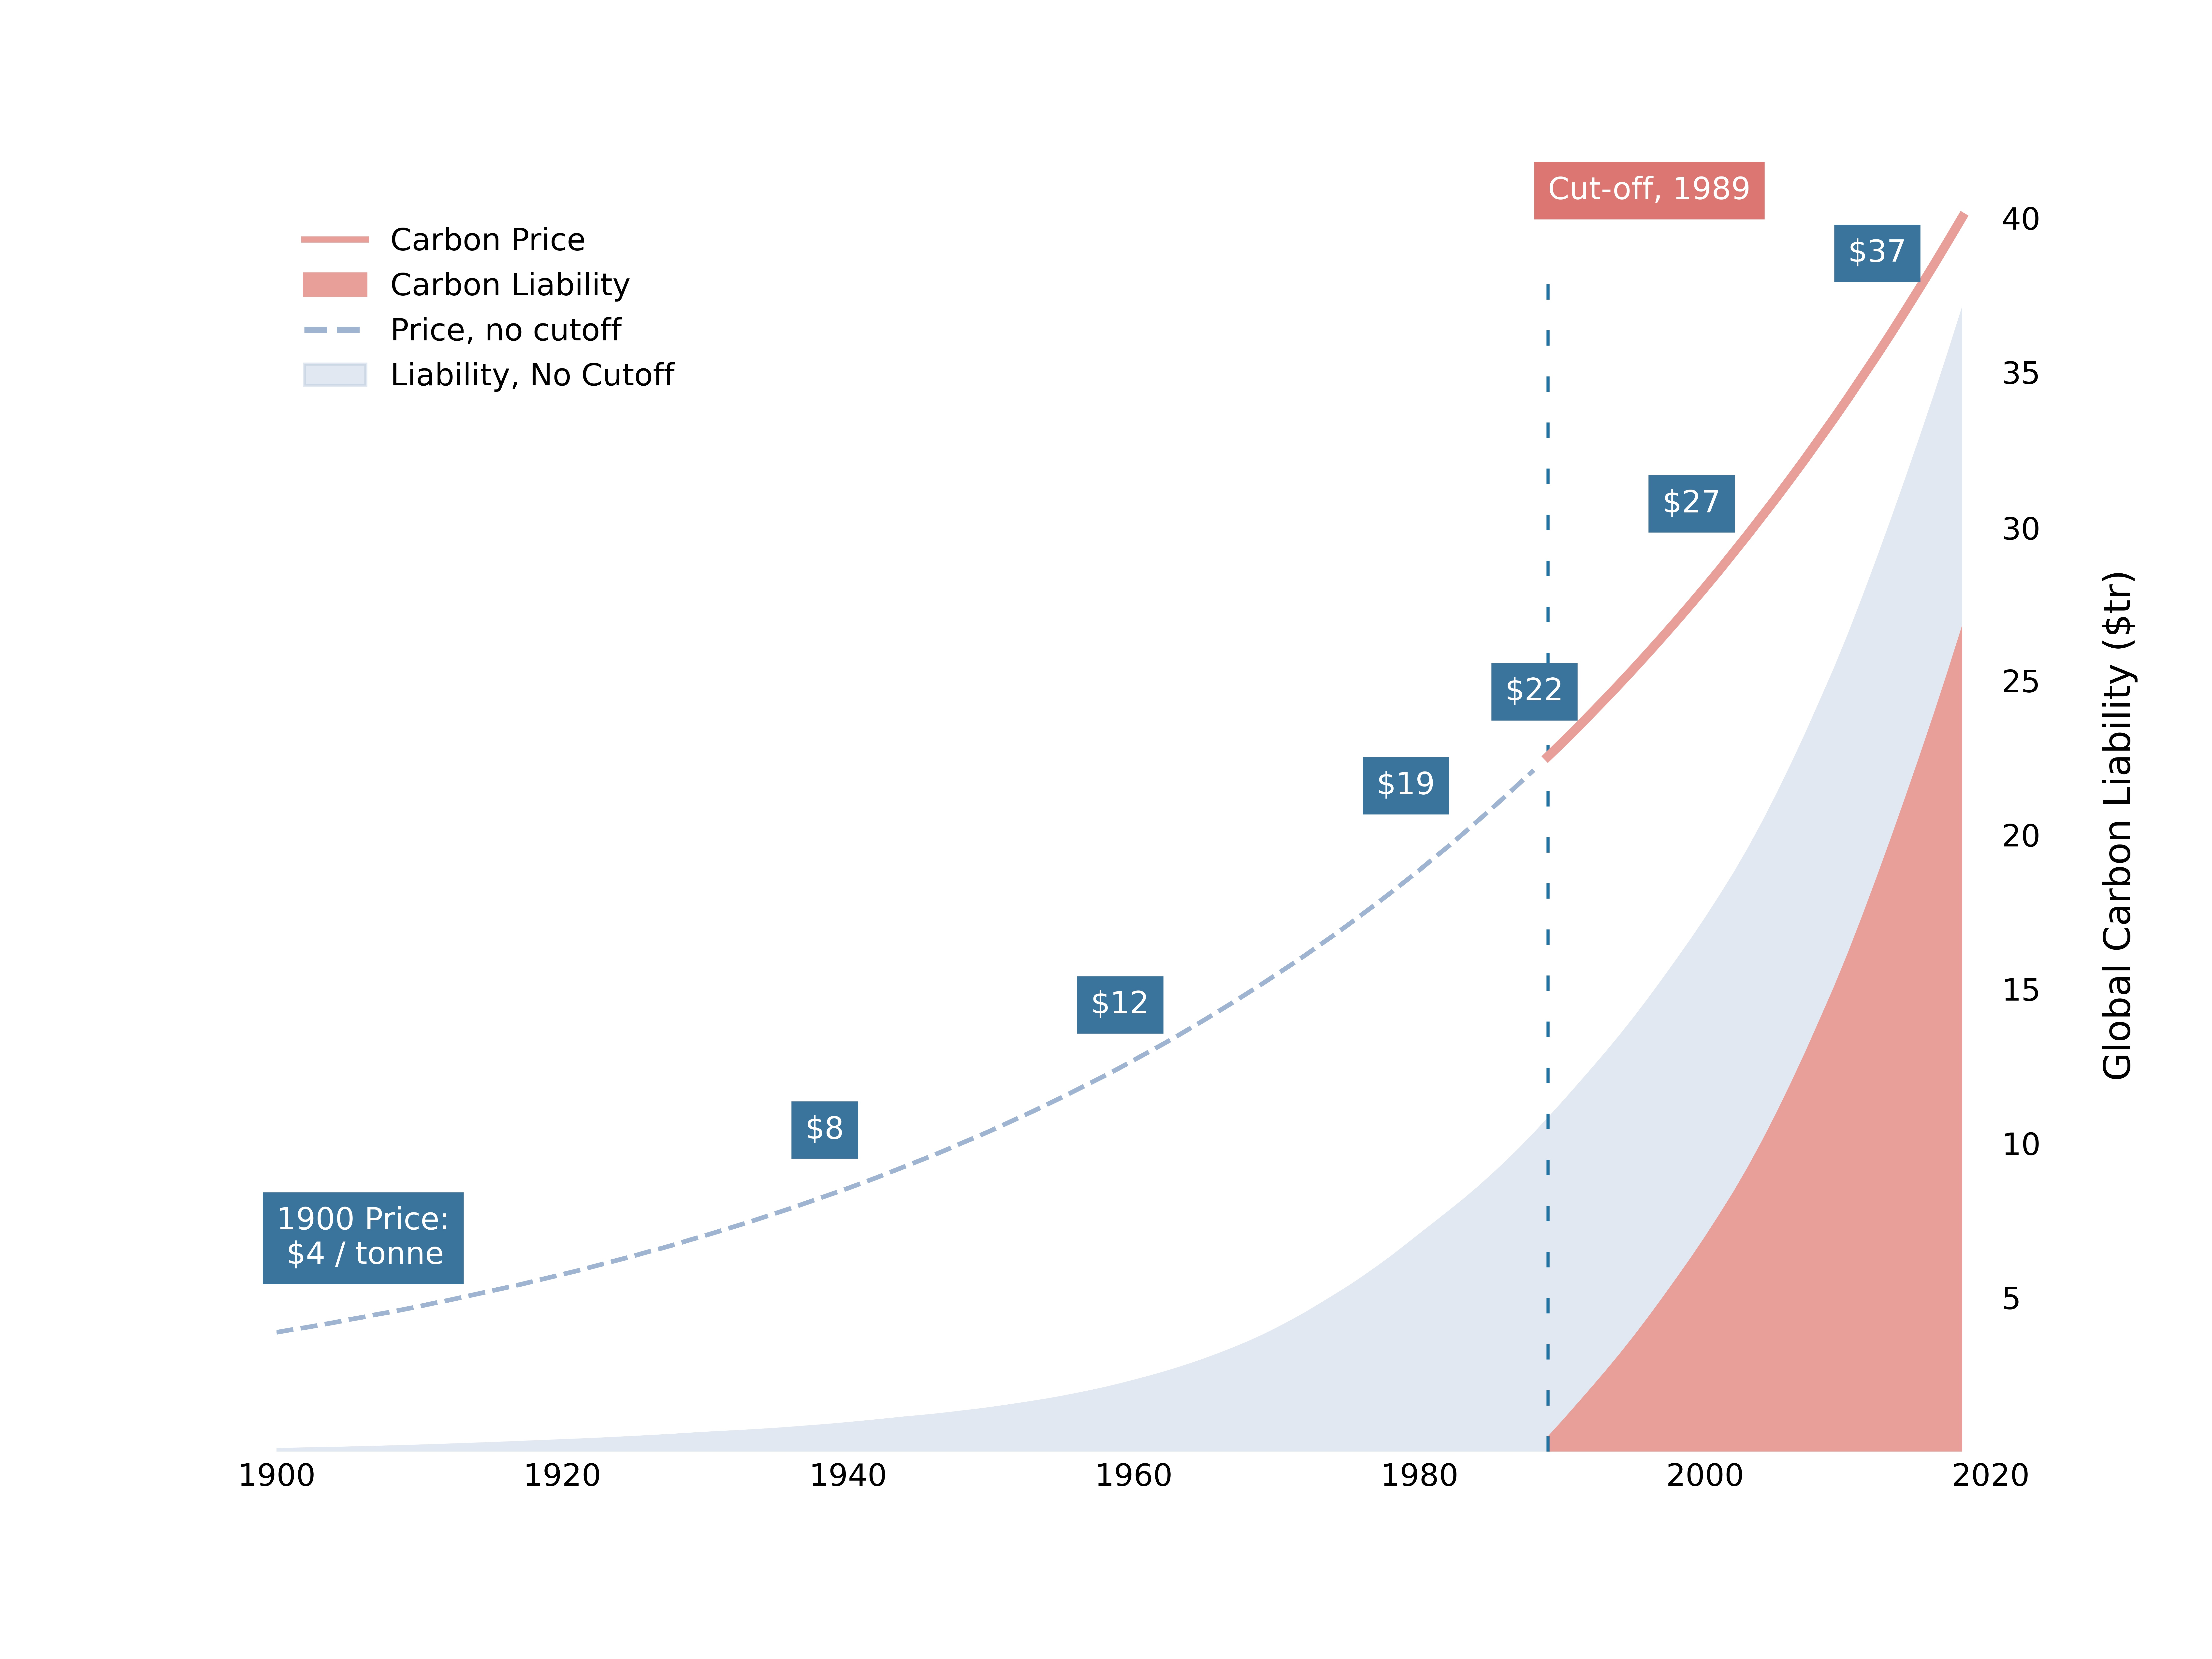 A chart showing carbon debt and liability